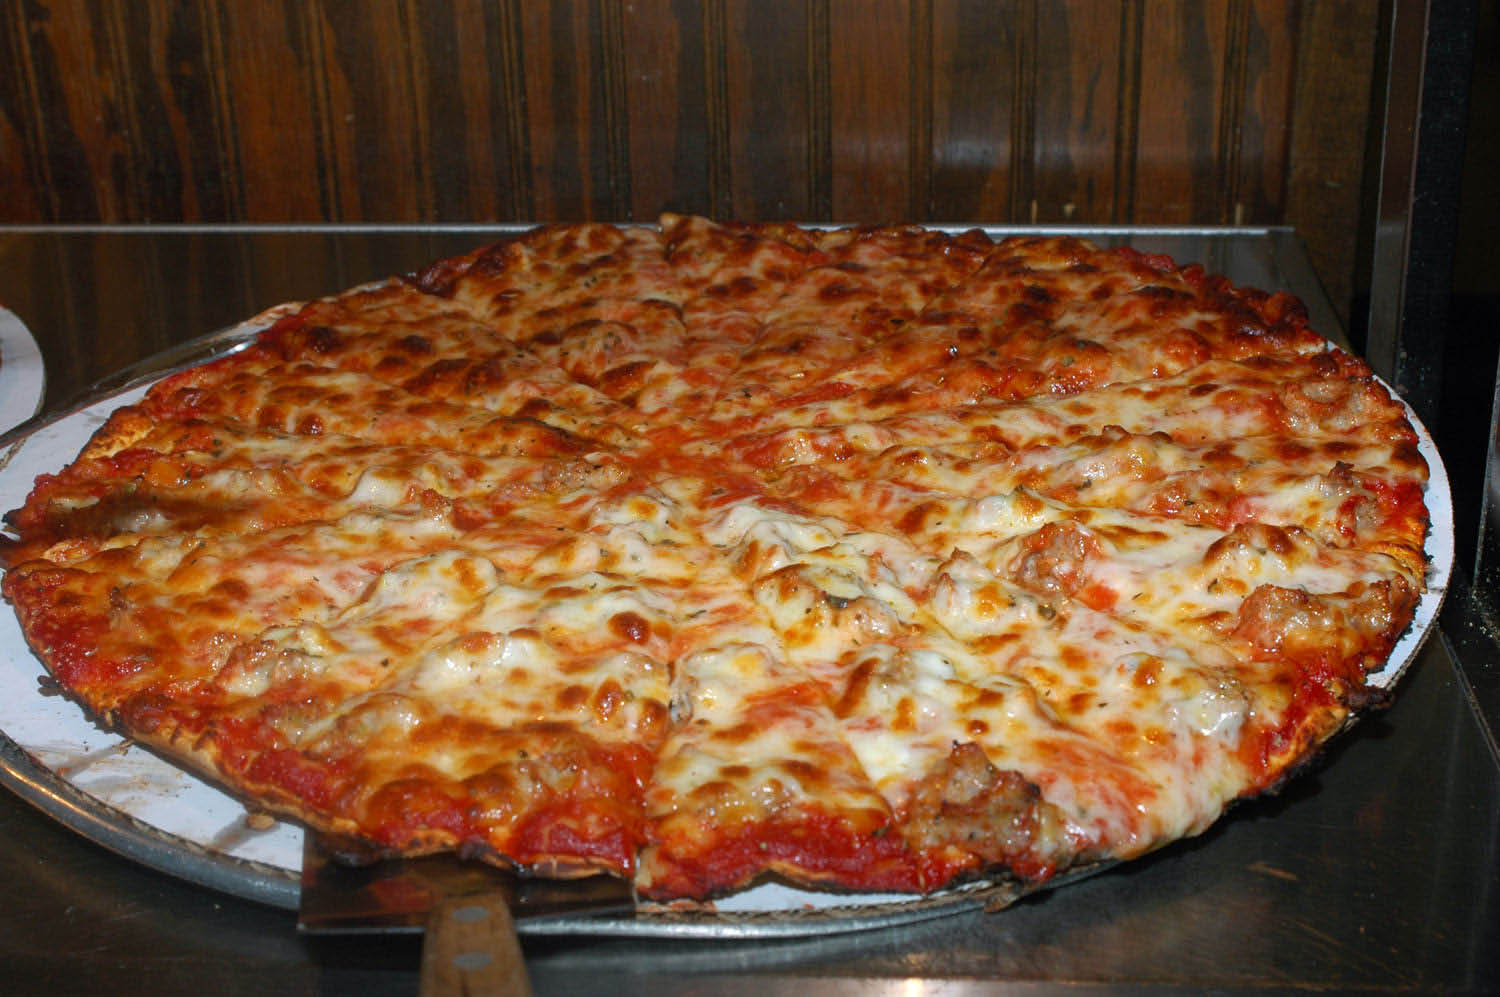 Gluten free pizza available in Tinley Park.